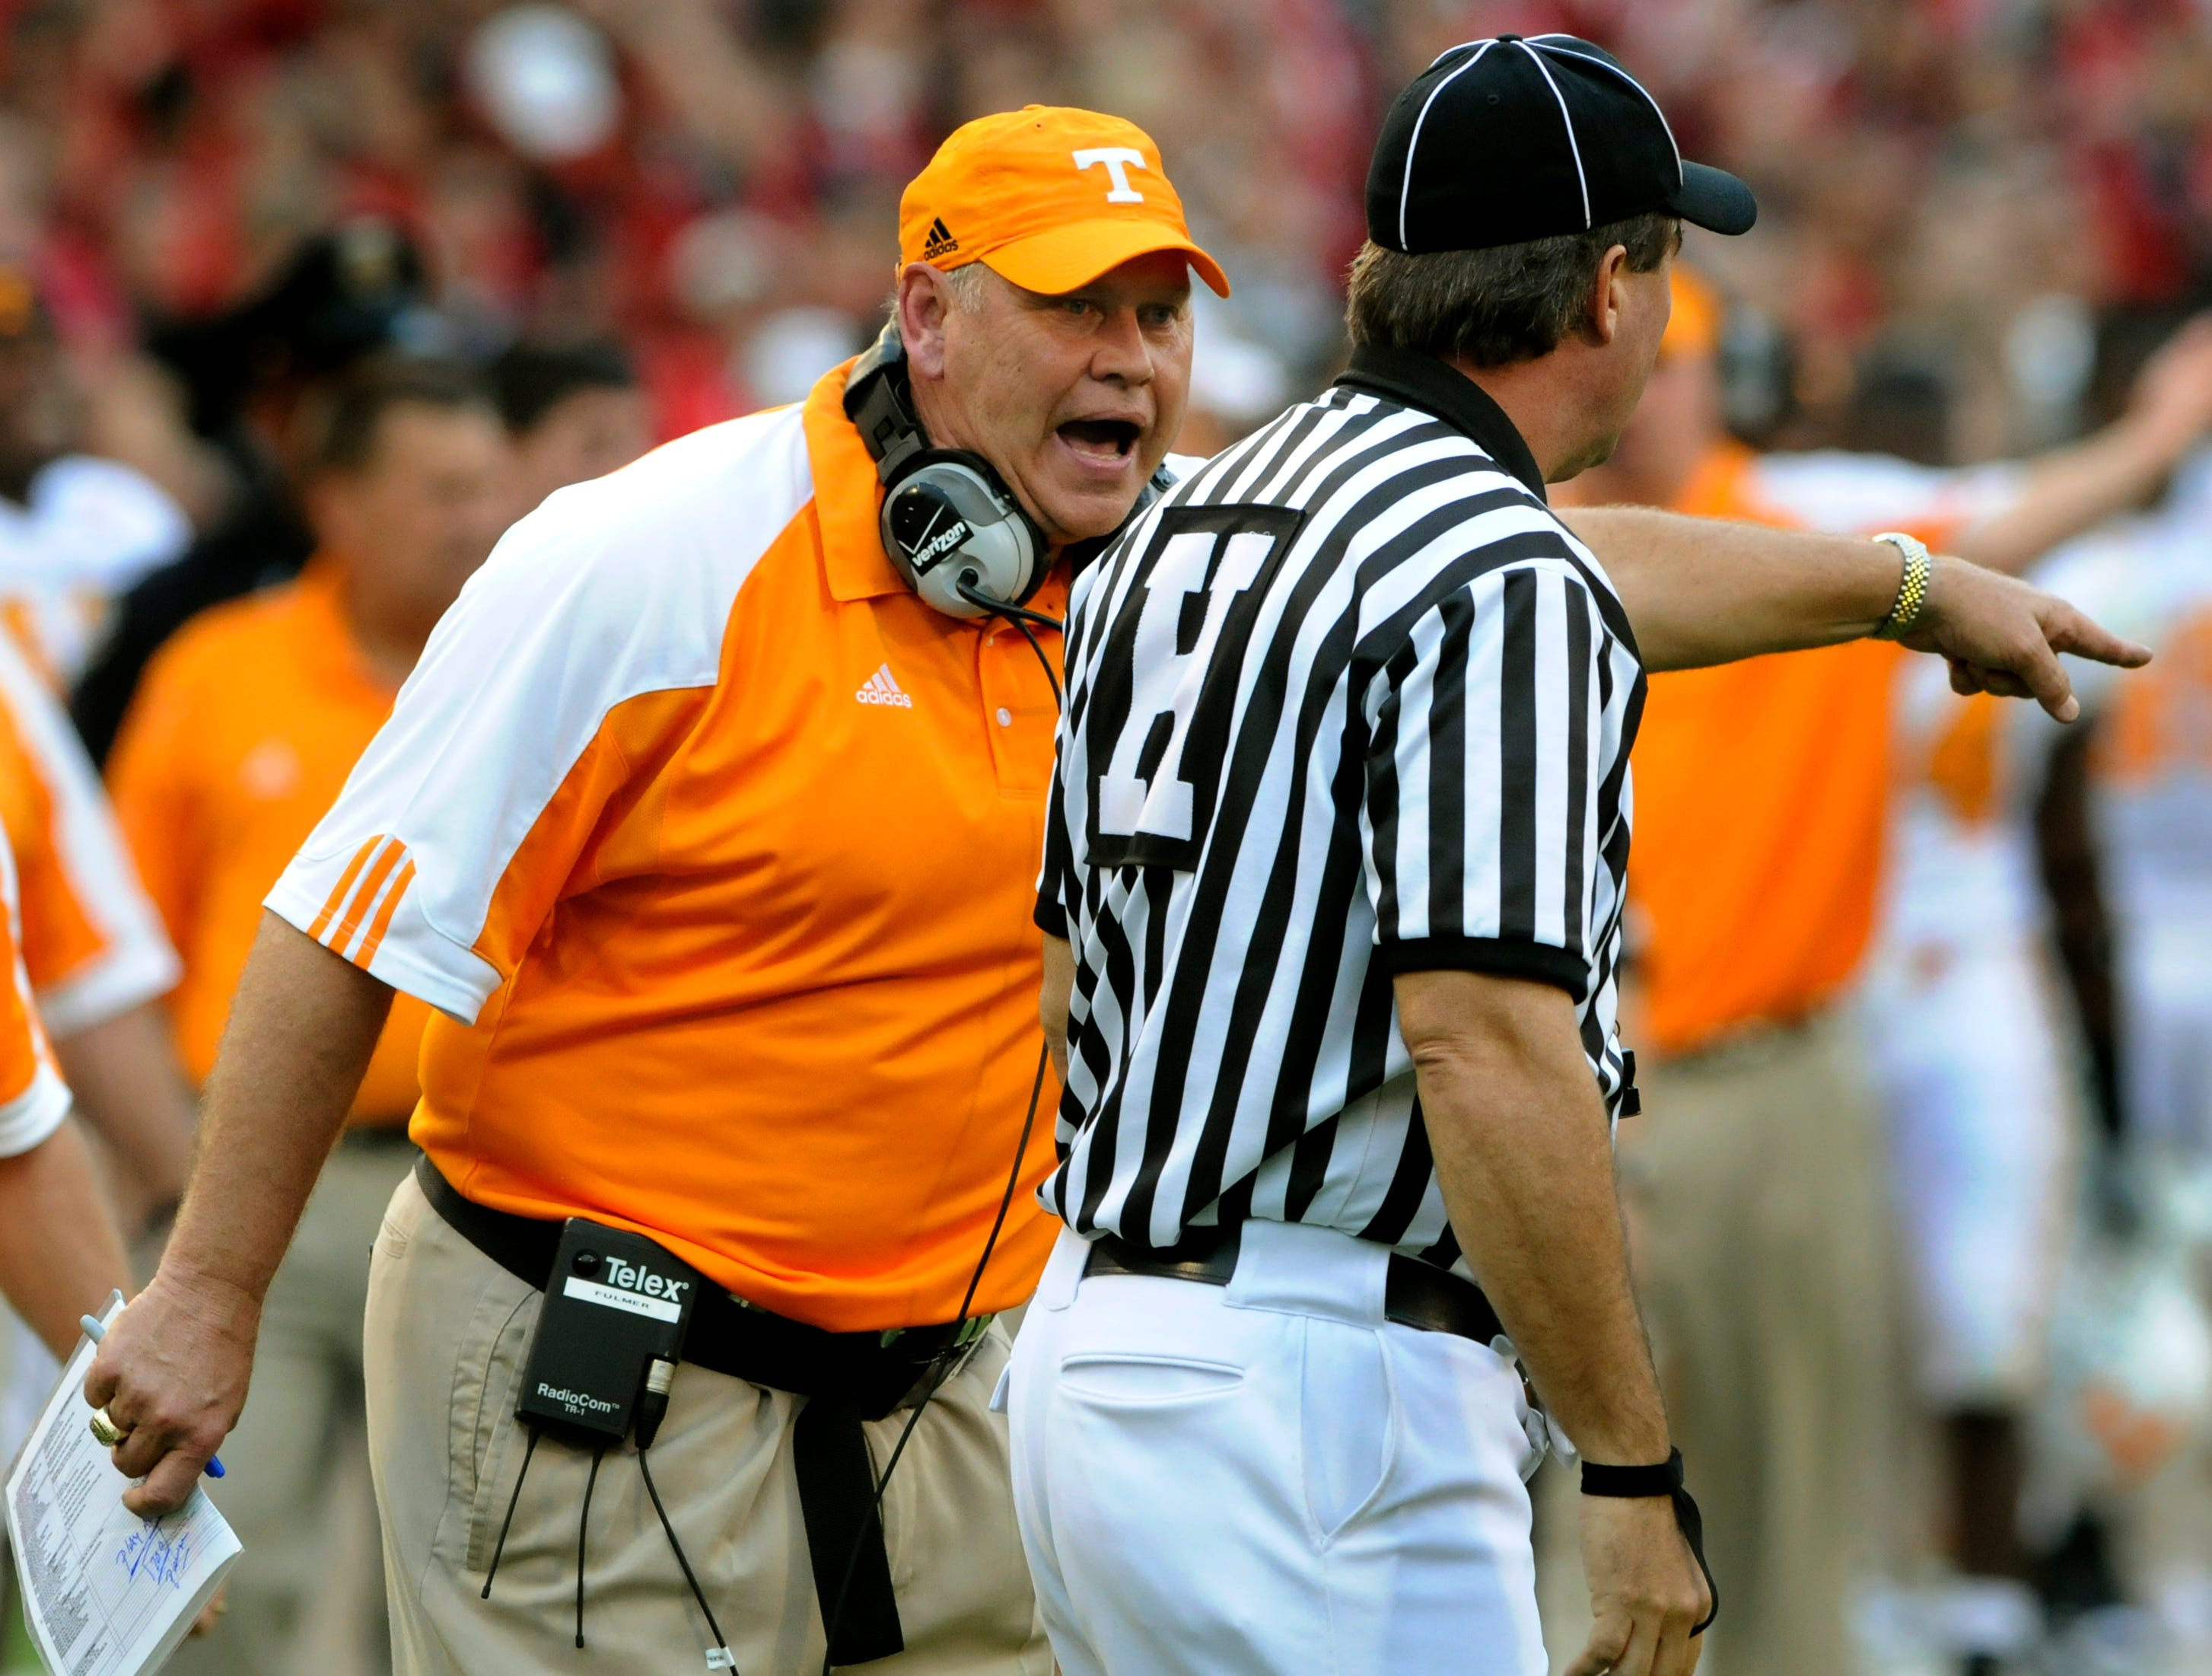 Saturday, October 11, 2008  Tennessee head coach Phillip Fulmer questions an official during second half action against the Georgia Bulldogs Saturday at Sanford Stadium in Athens, GA. Georgia beat Tennessee 26-14.